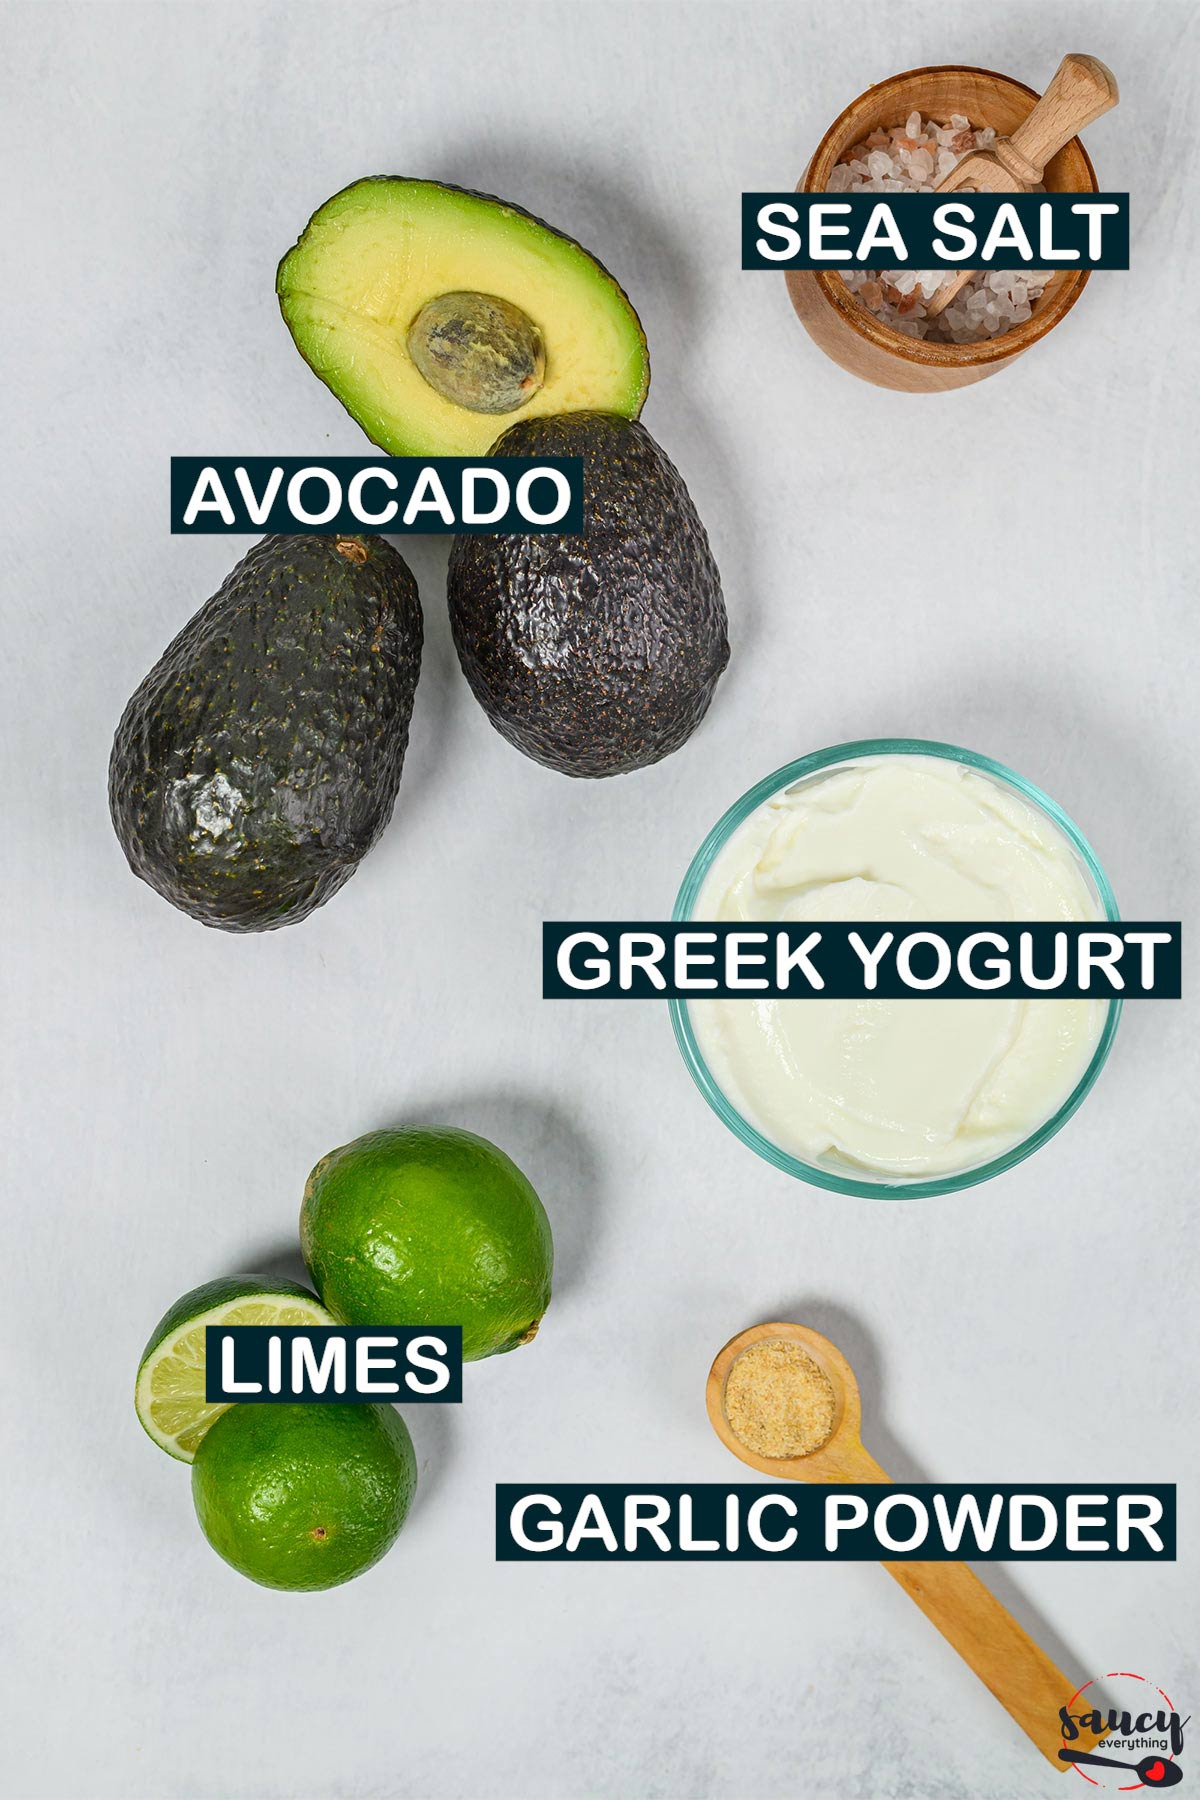 Avocado crema ingredients with labels on a white surface